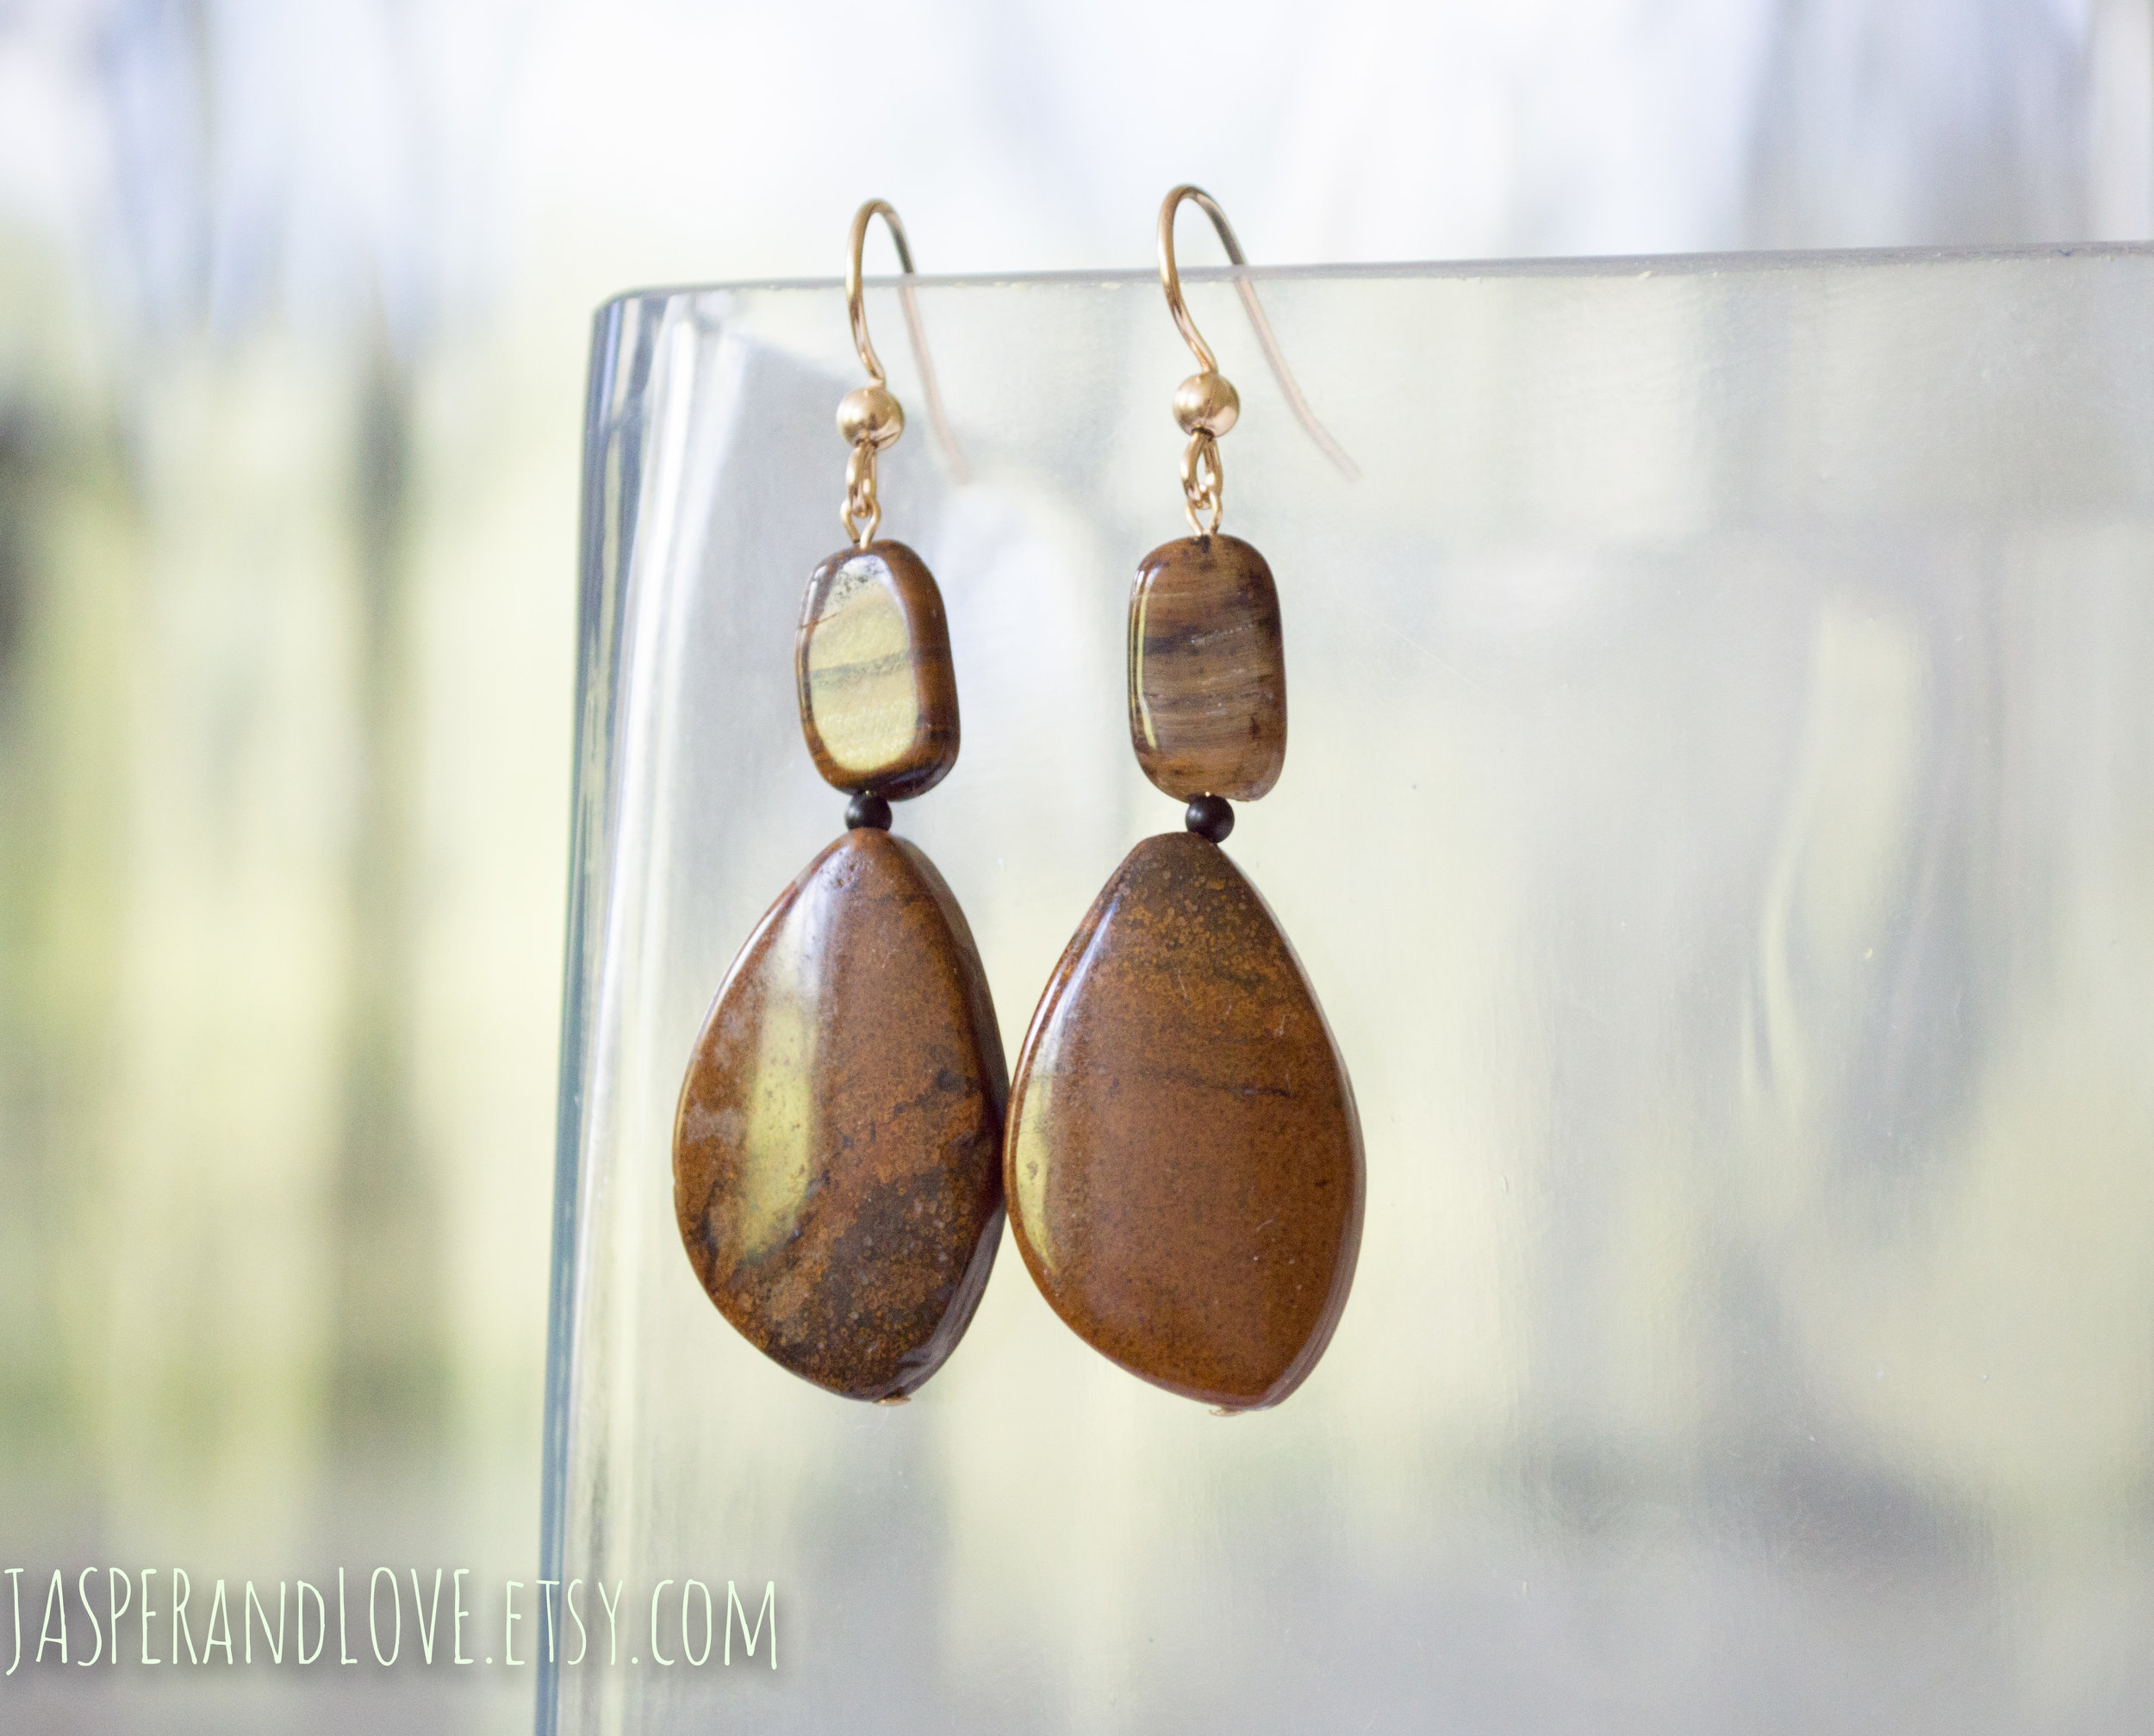 Agnes - Agate gold dangle earrings